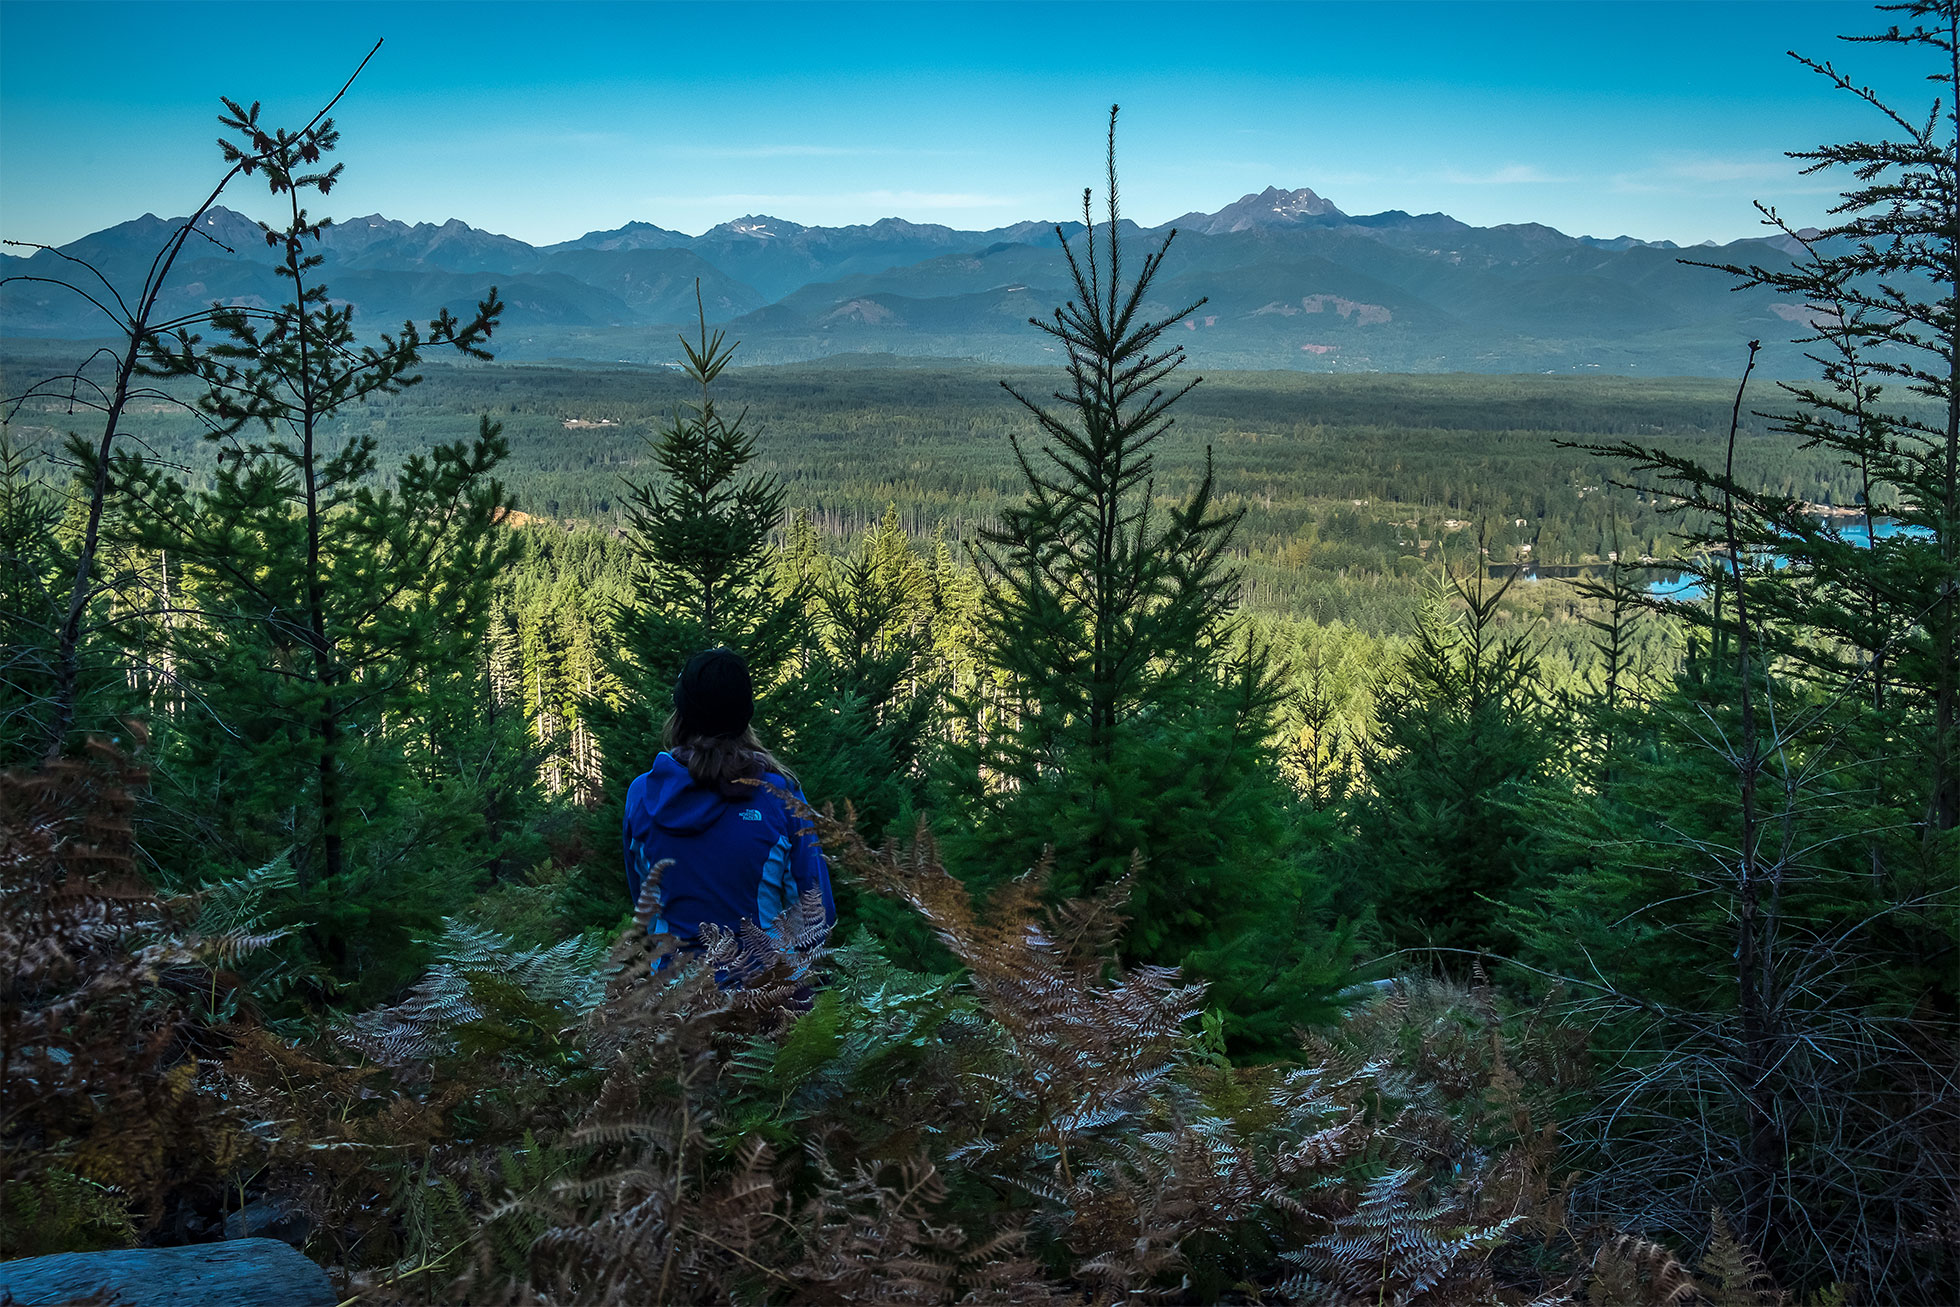 The economic benefits of conserved lands, trails, and parks on the North Olympic Peninsula